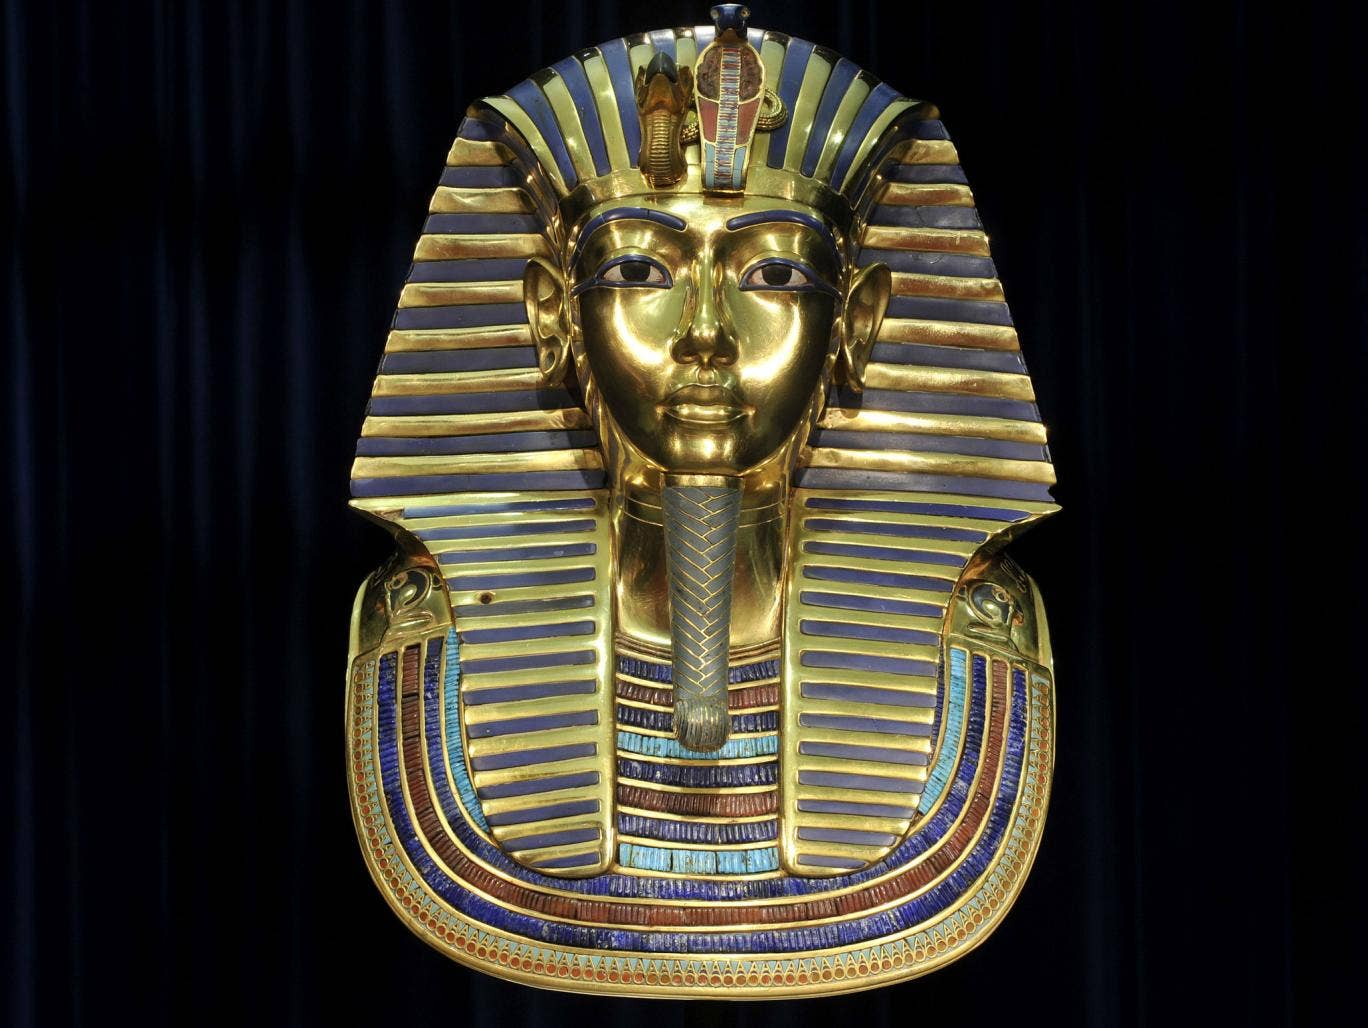 the death of tutankhamen Tutankhamun was an egyptian pharaoh of the 18th dynasty (ruled ca 1332 bc - 1323 bc in the conventional chronology), during the period of egyptian history known as the new kingdom he is popularly referred to as king tut his original name, tutankhaten, means living image of aten, while.